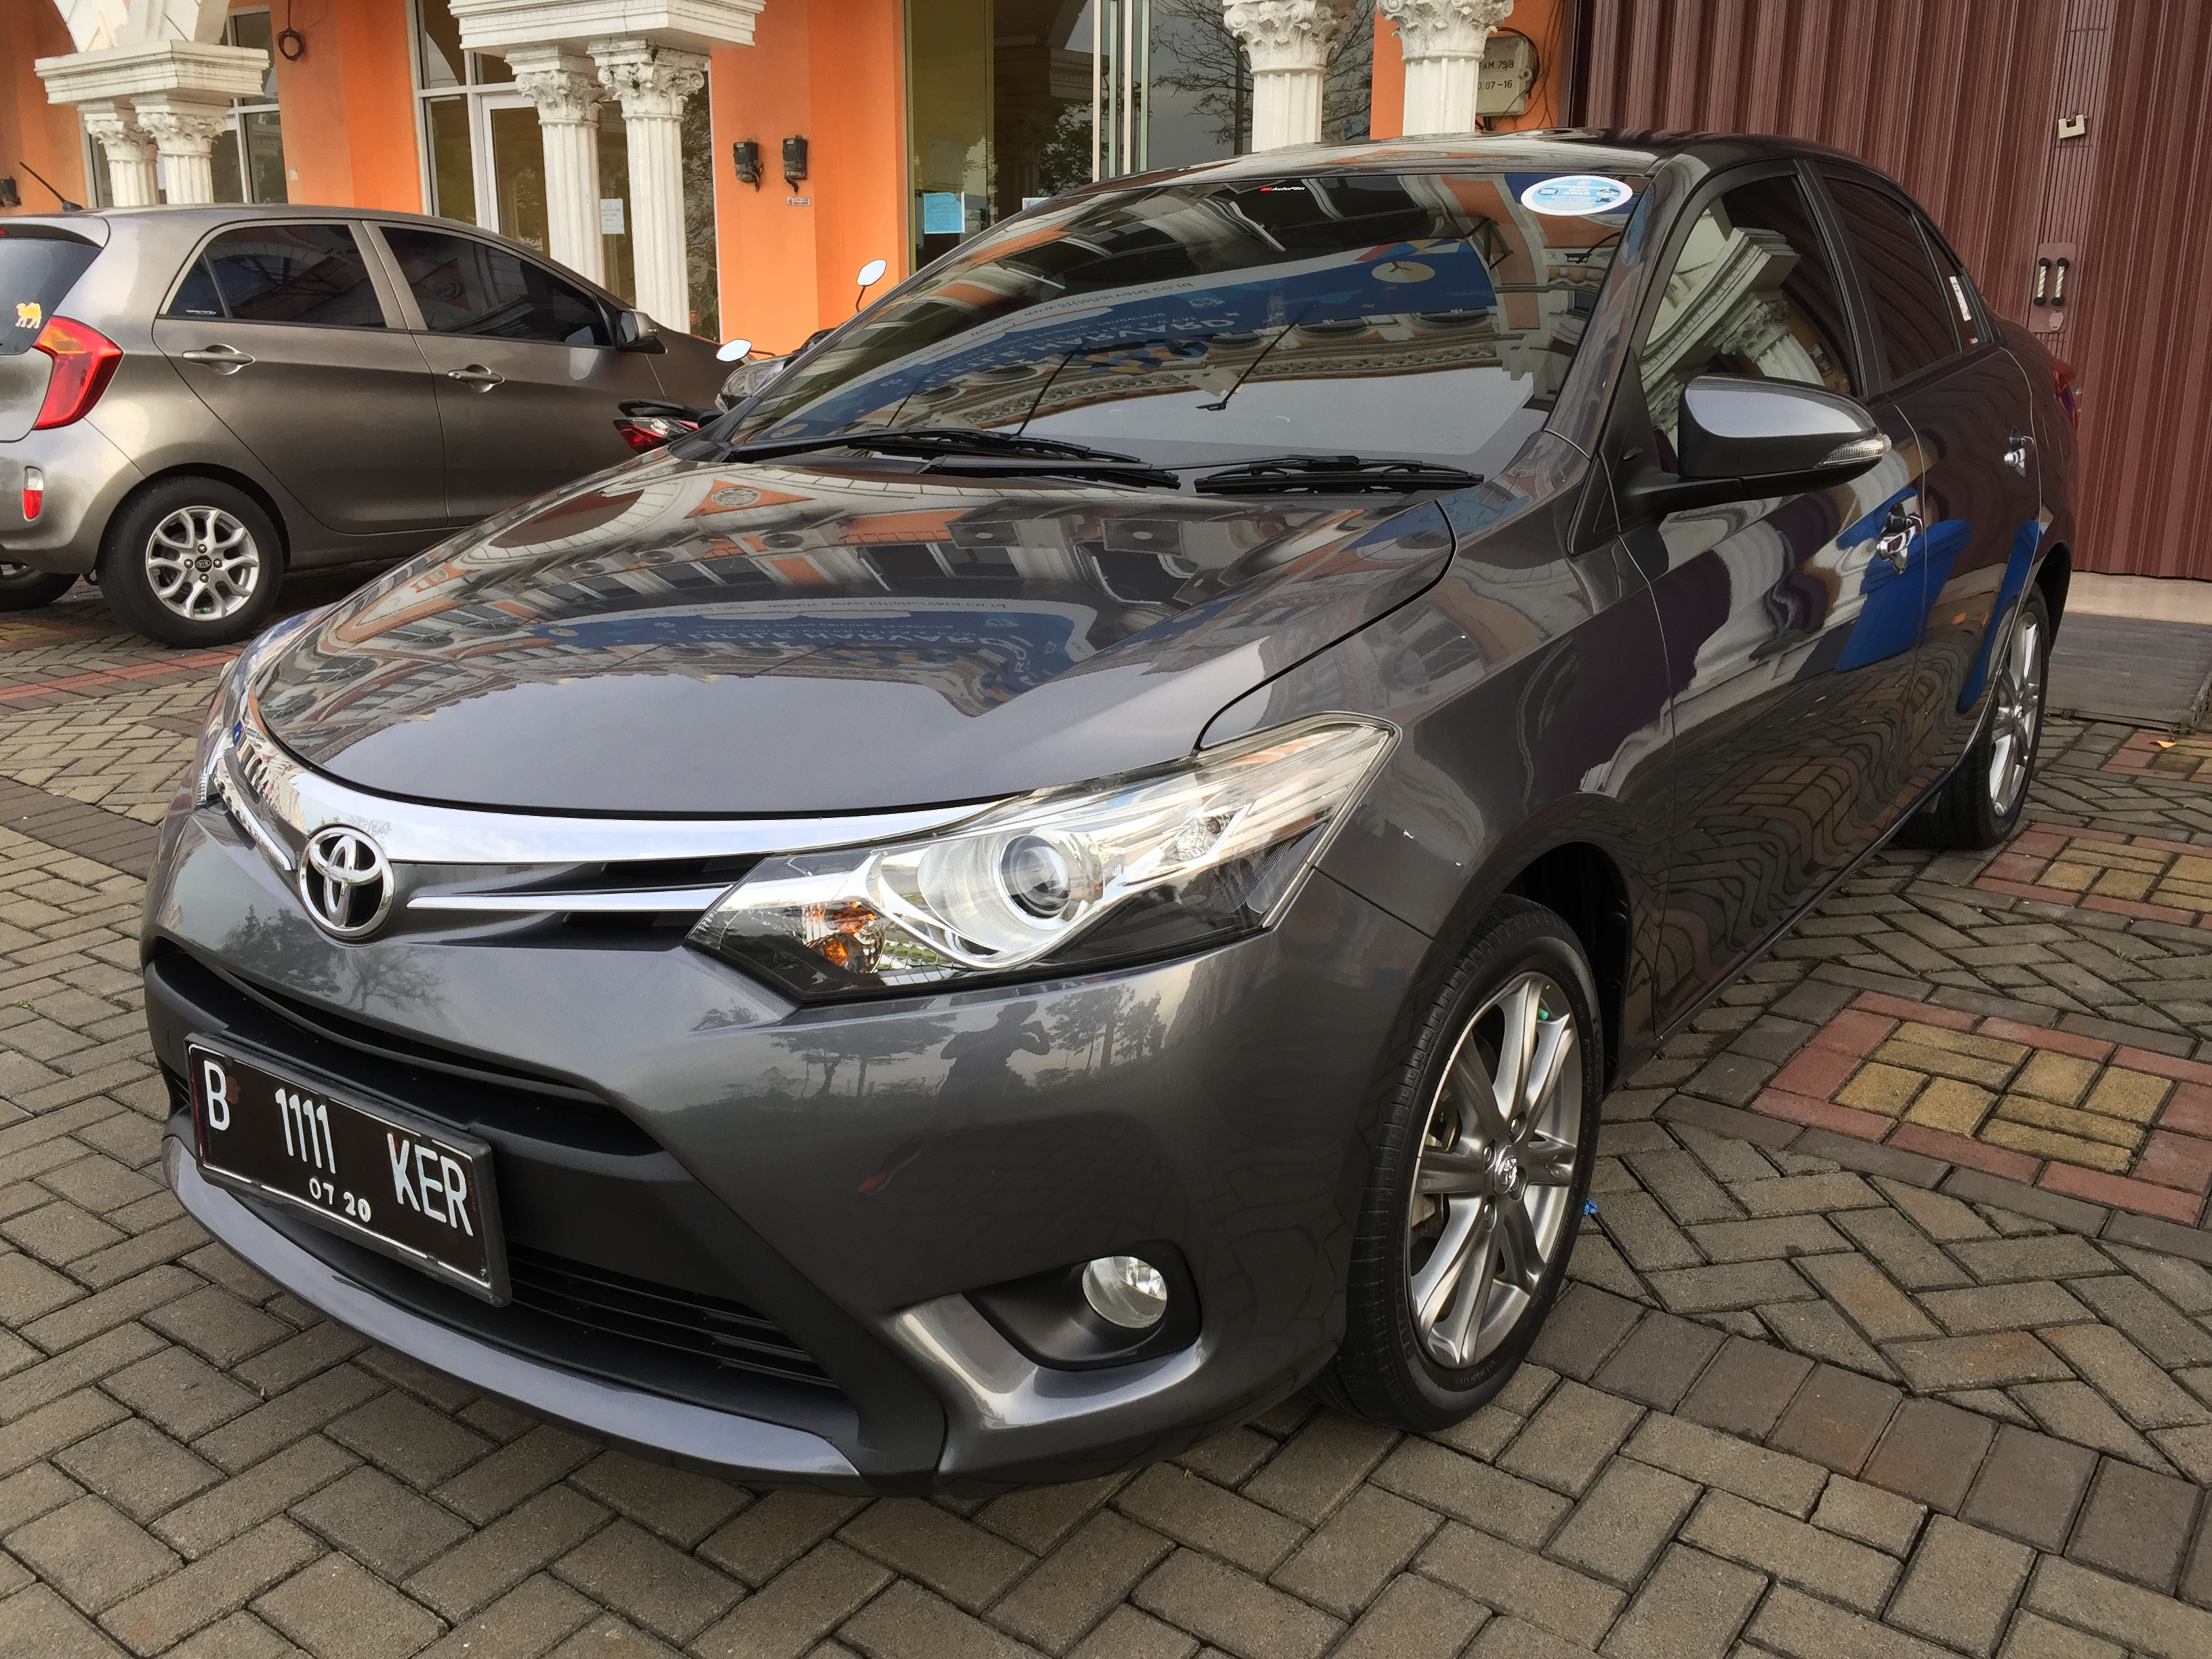 Toyota Vios Nano Ceramic Coating